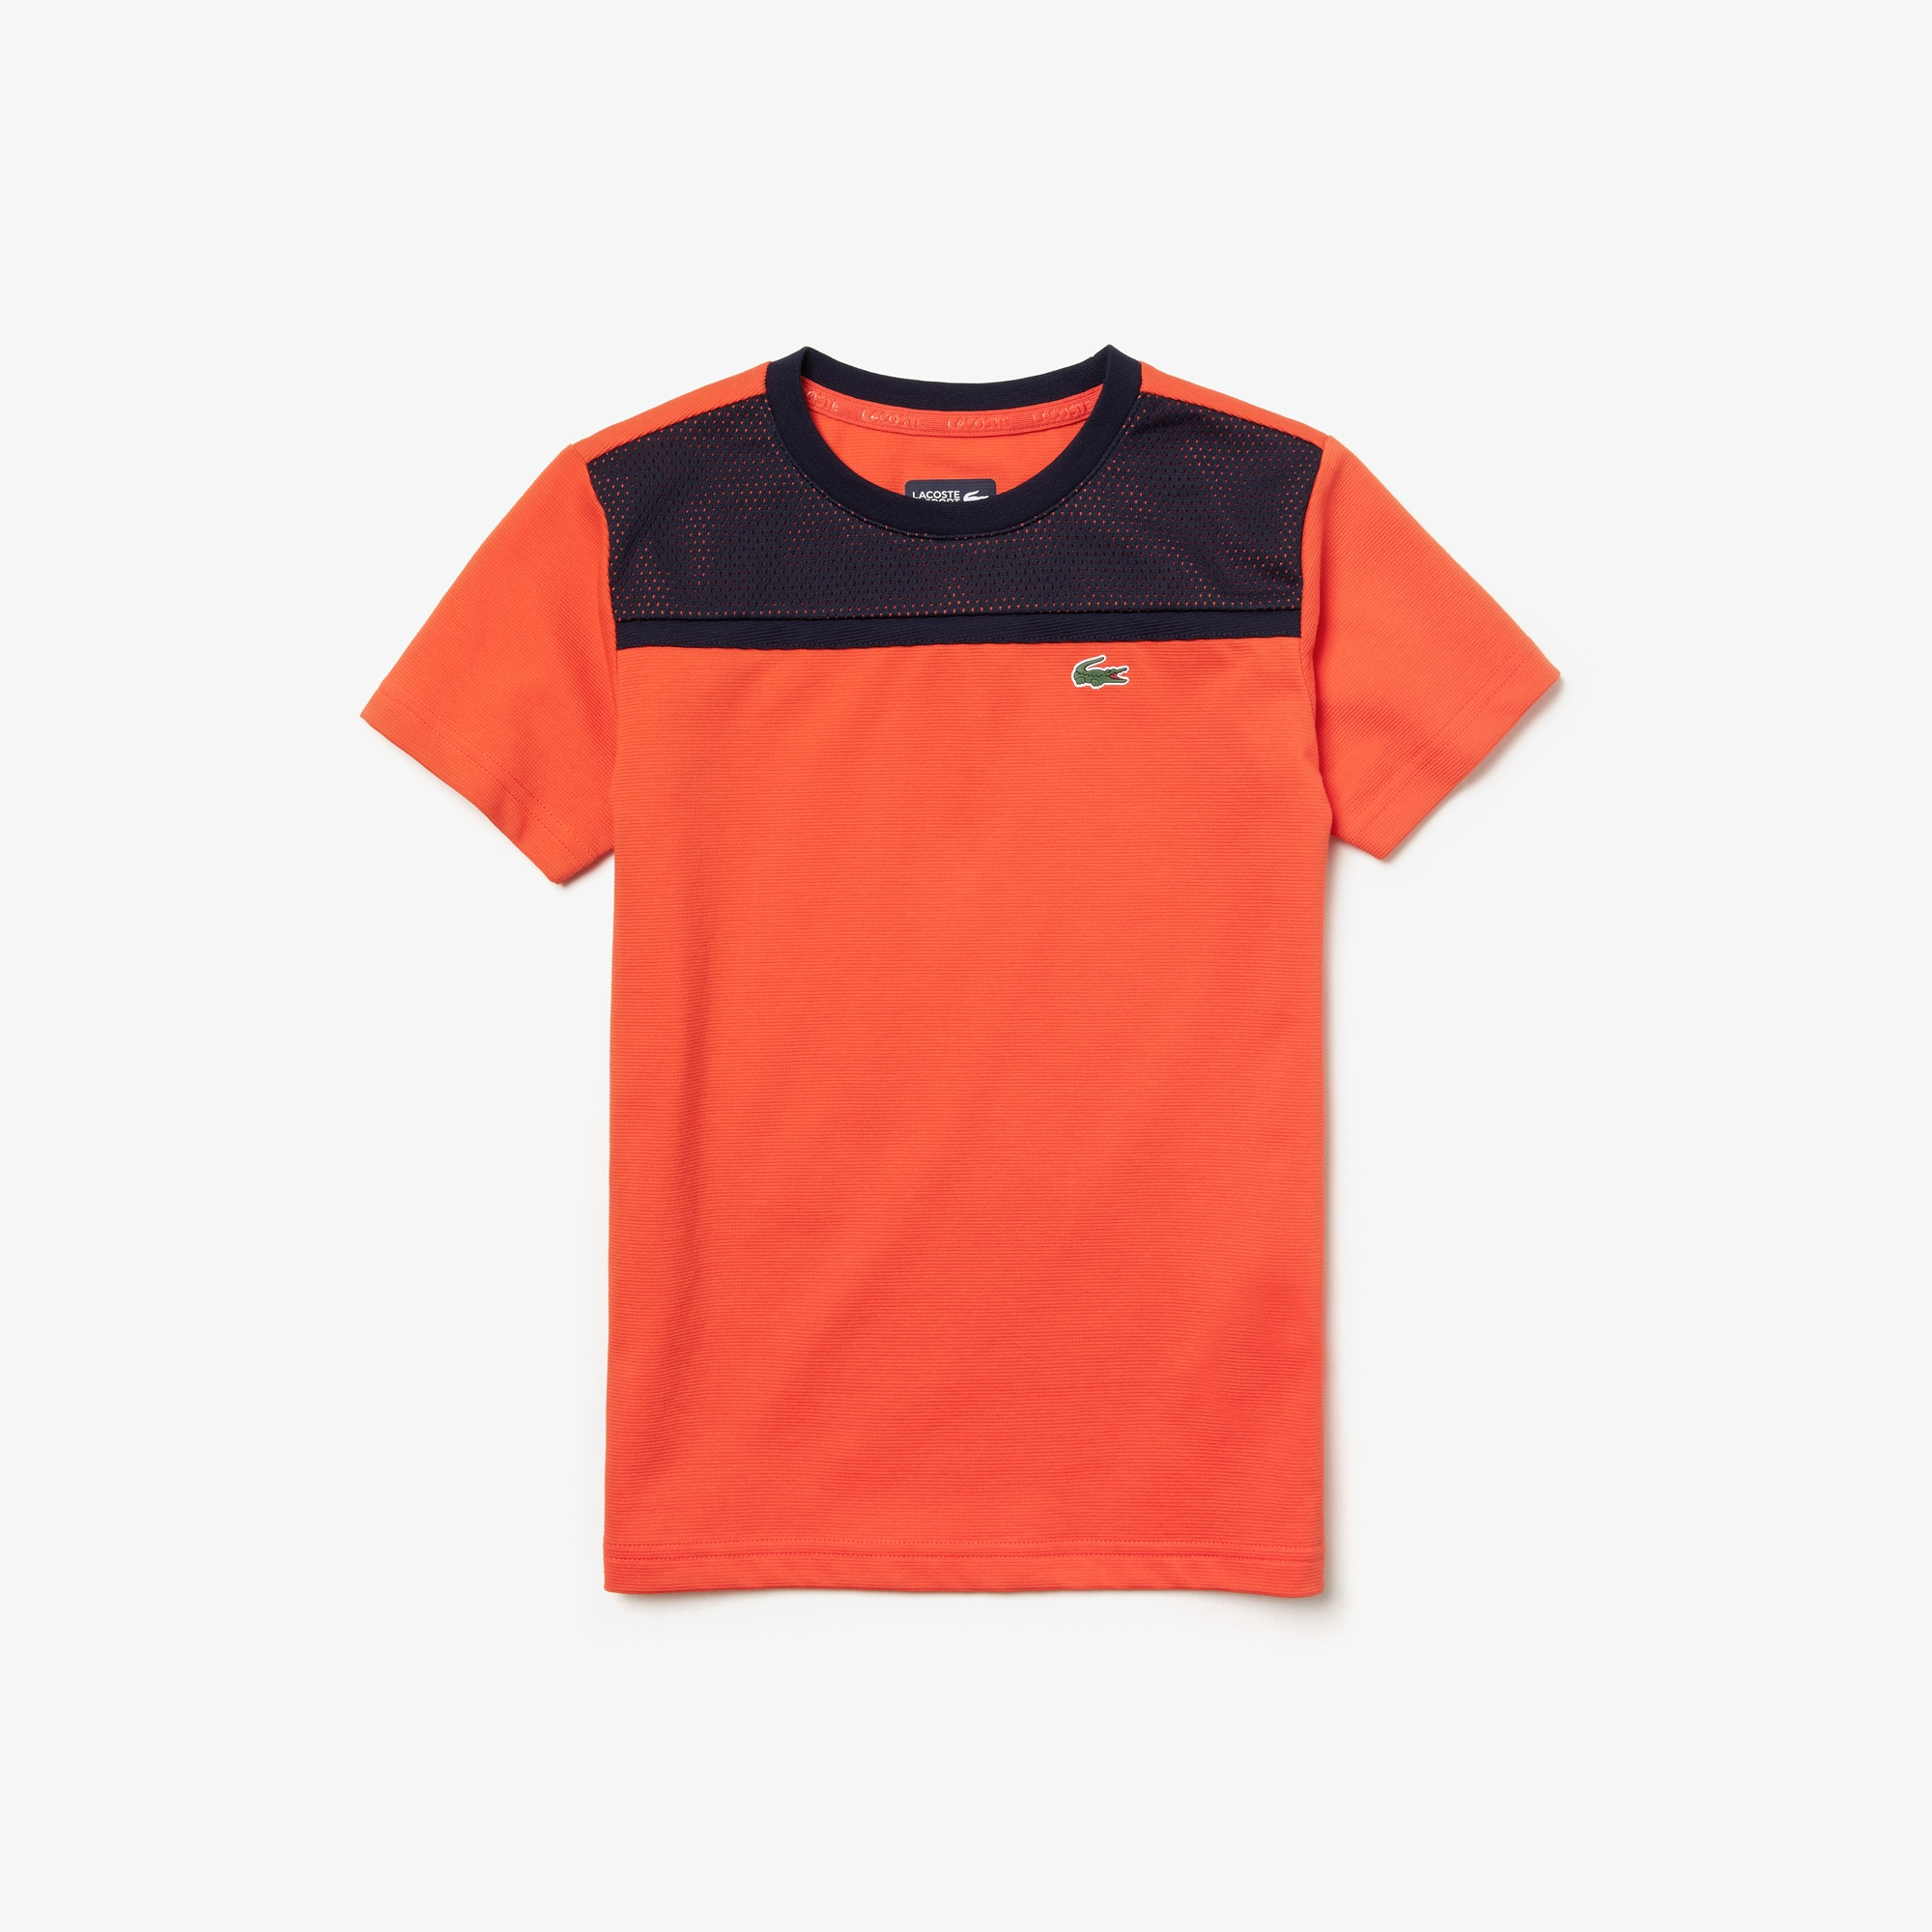 6852cf92e9 All products | Kids | LACOSTE SPORT